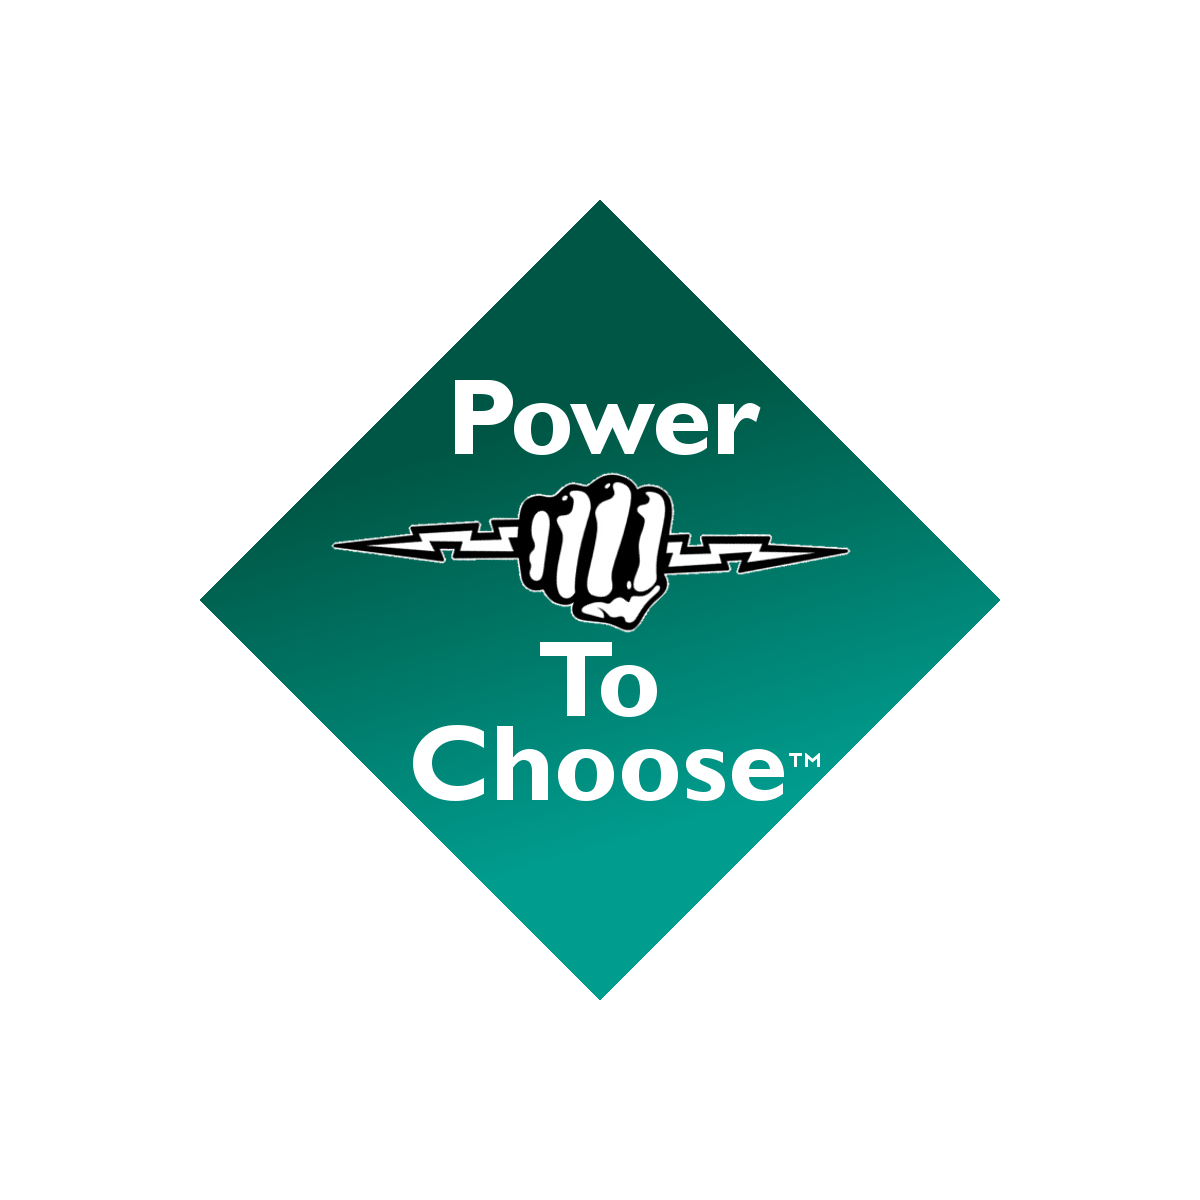 Power-To-Choose